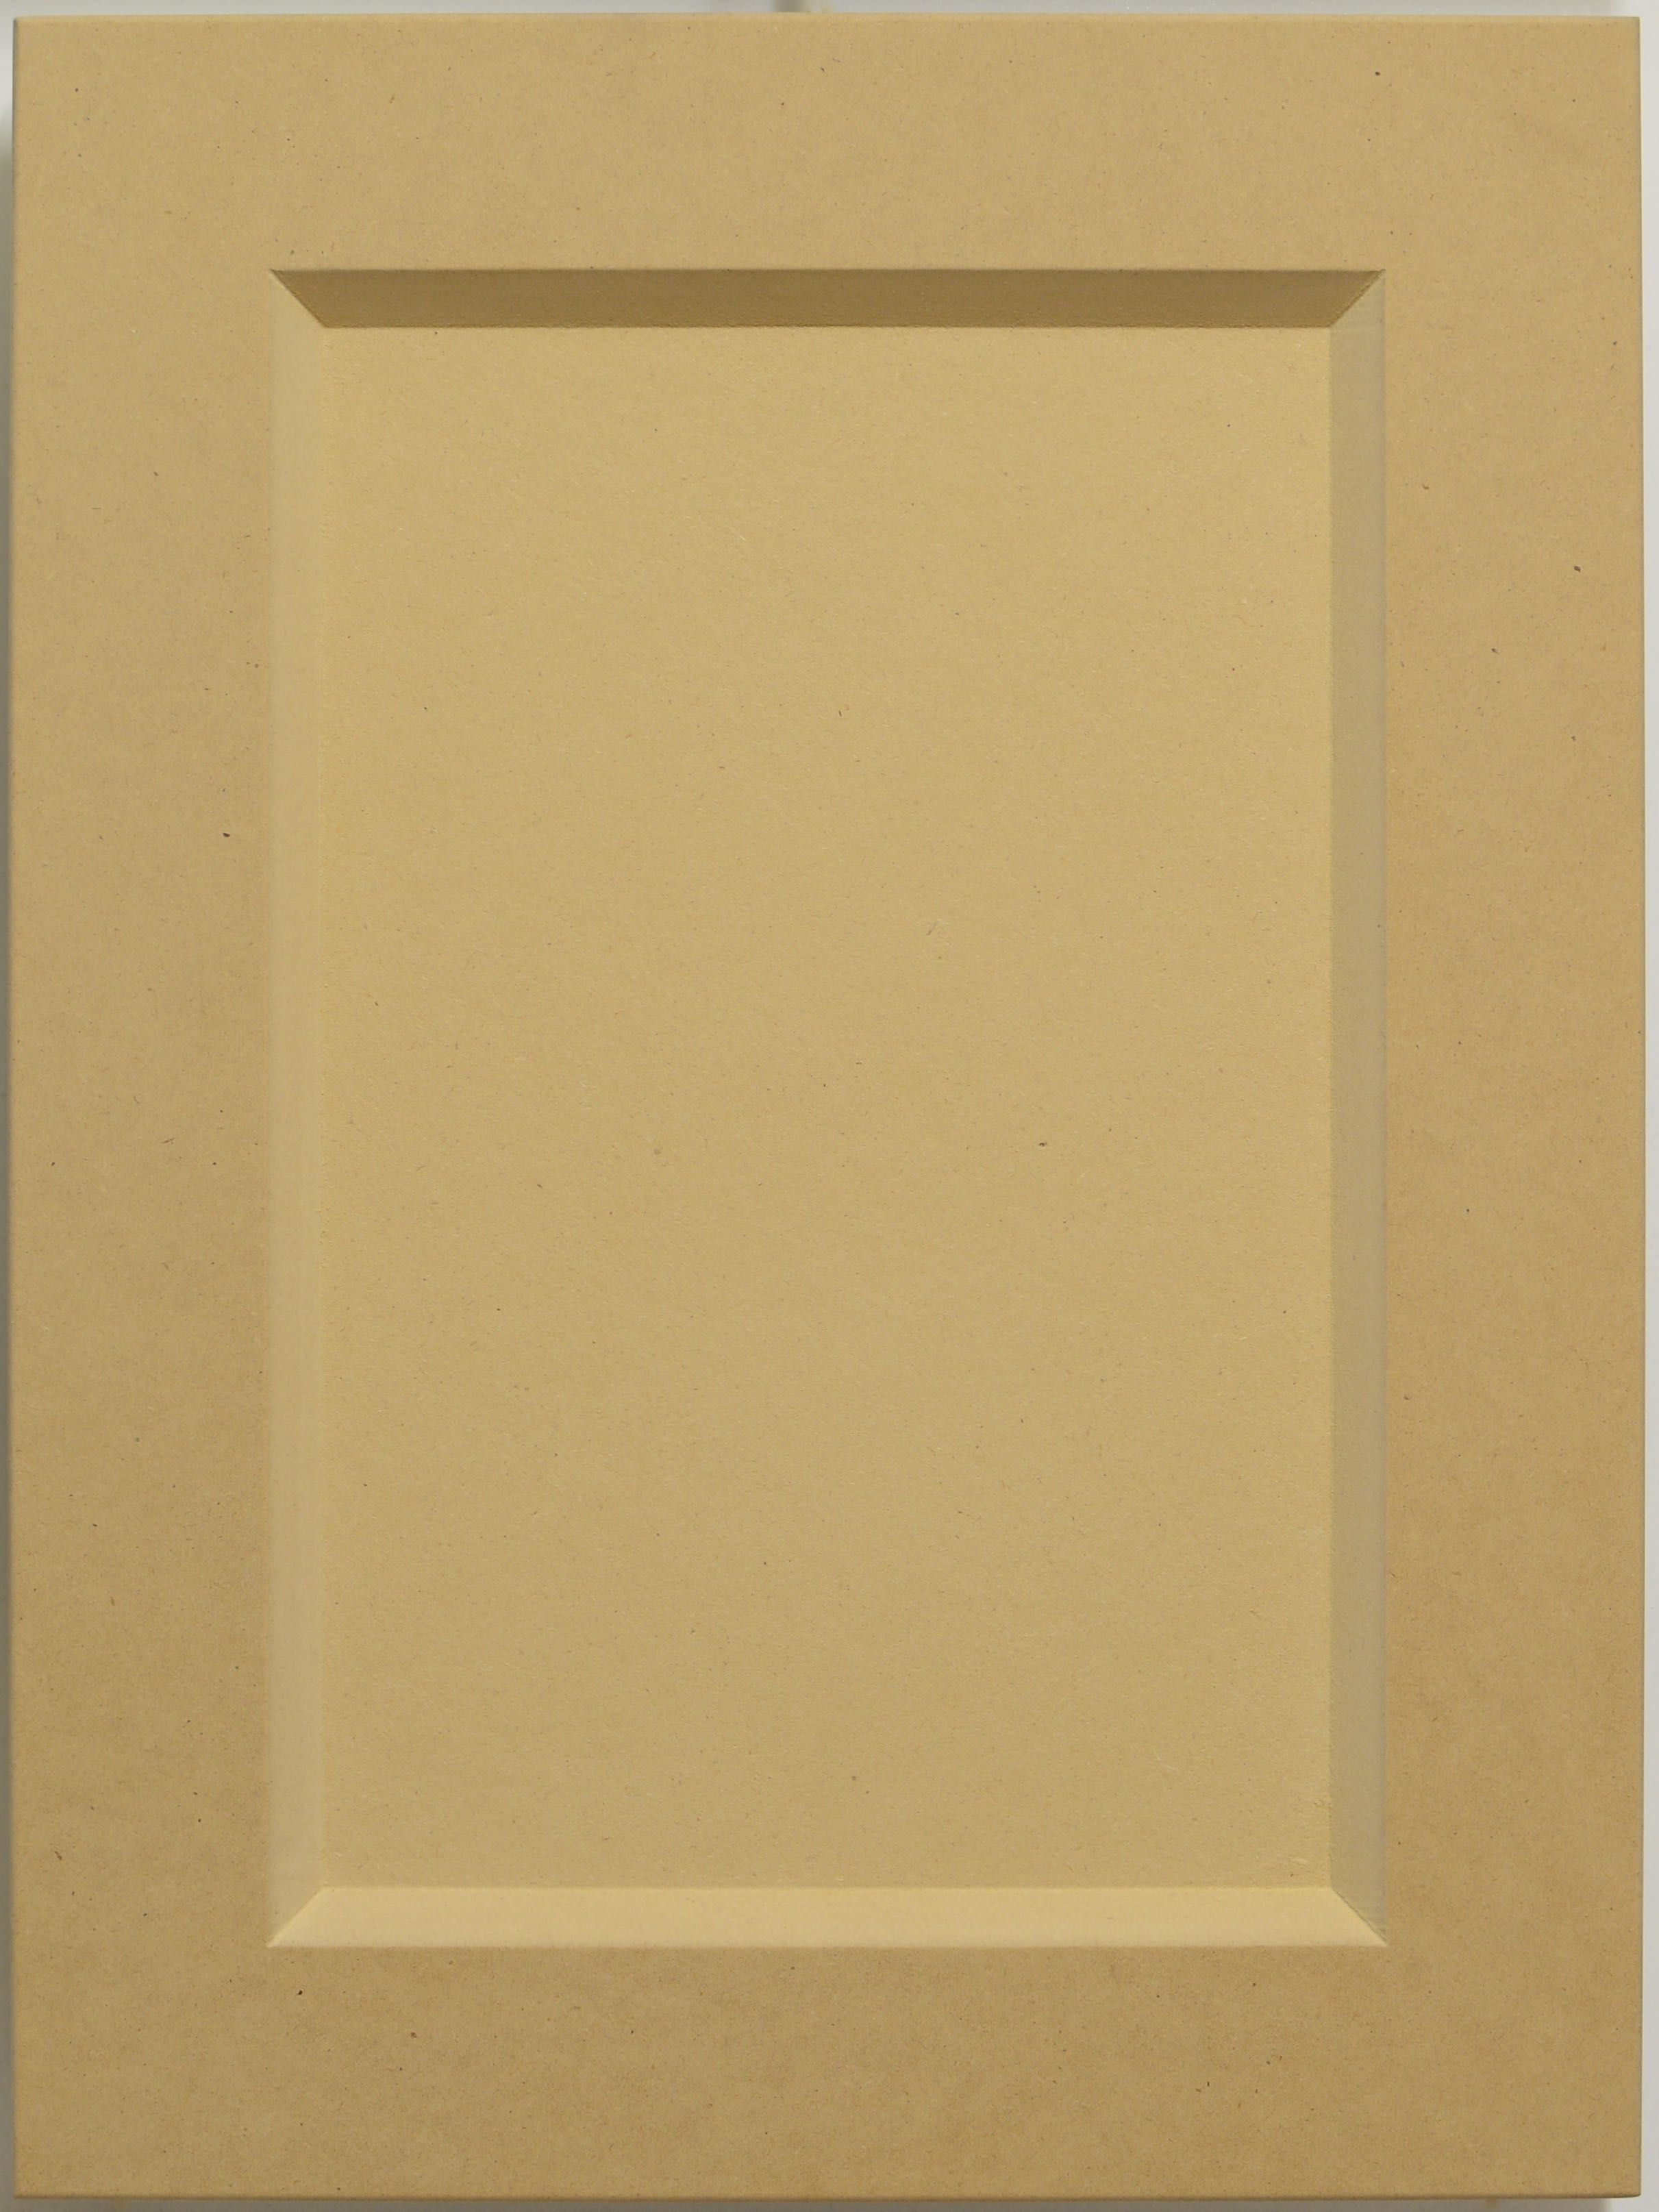 Mdf kitchen cabinet door profiles